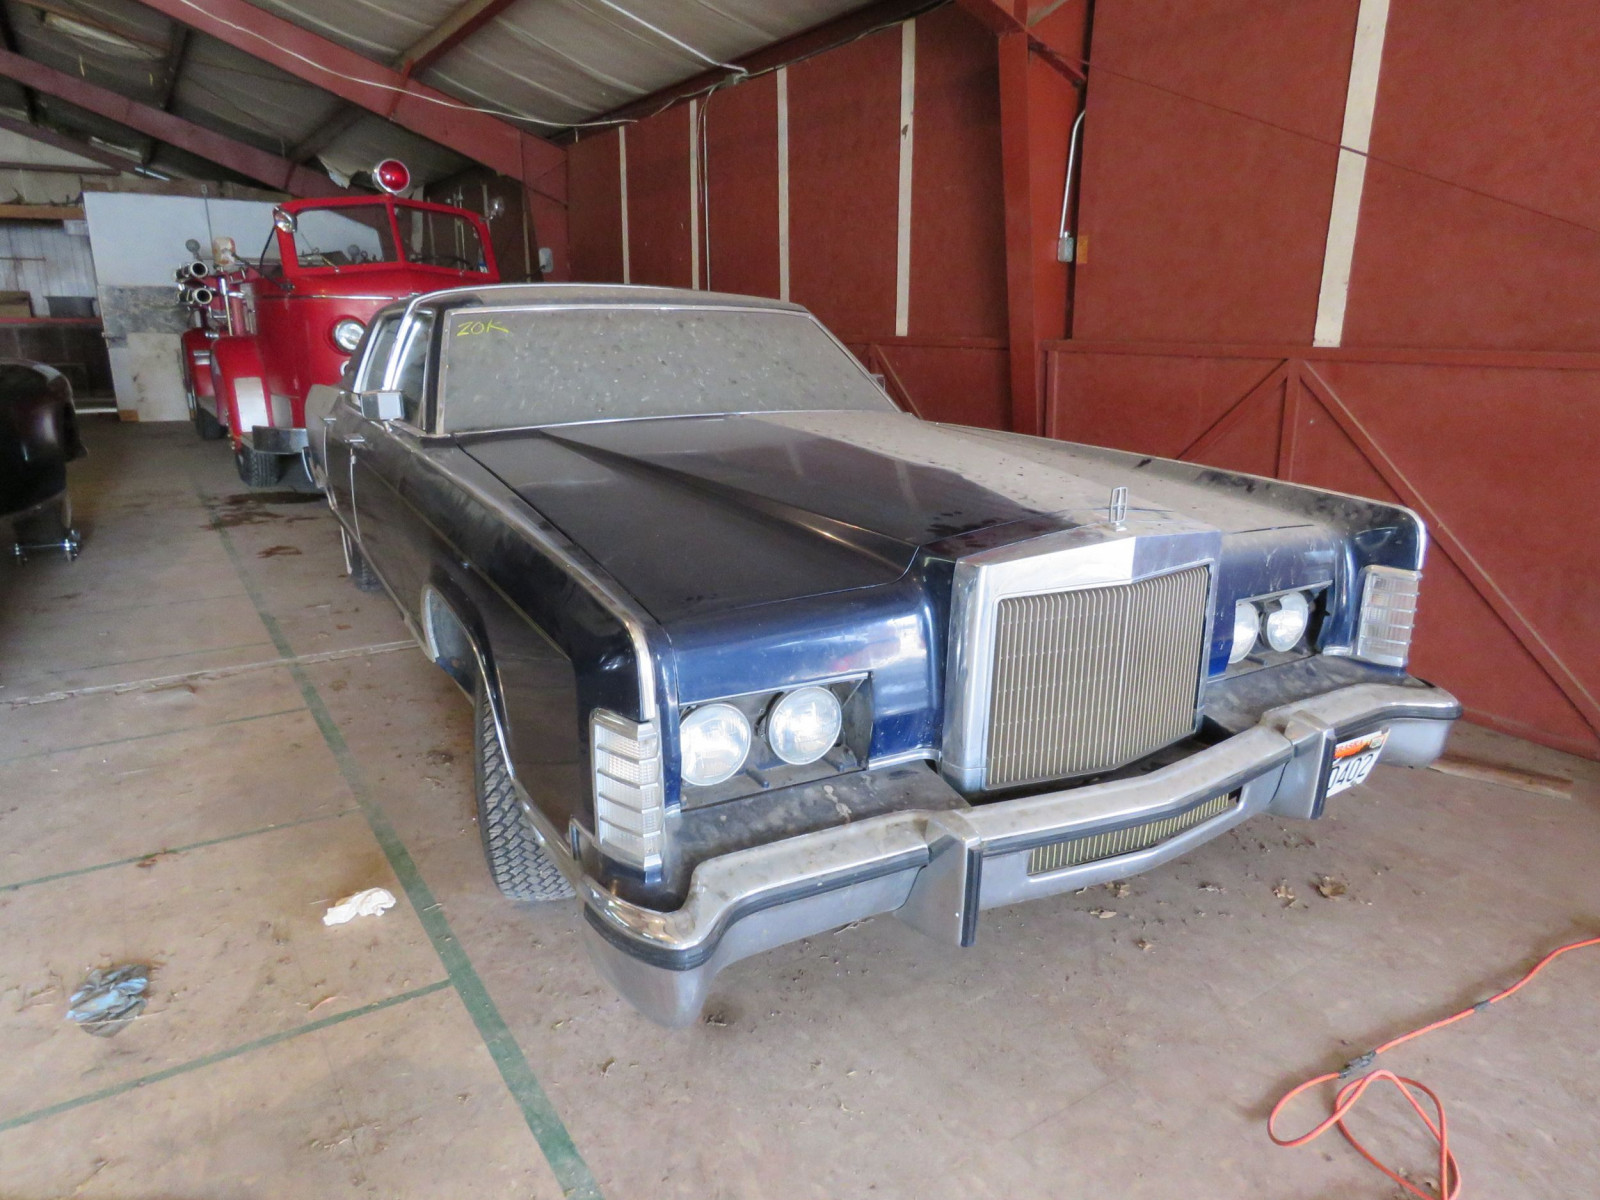 1979 lincoln continental Town Car 4dr Sedan - Image 1